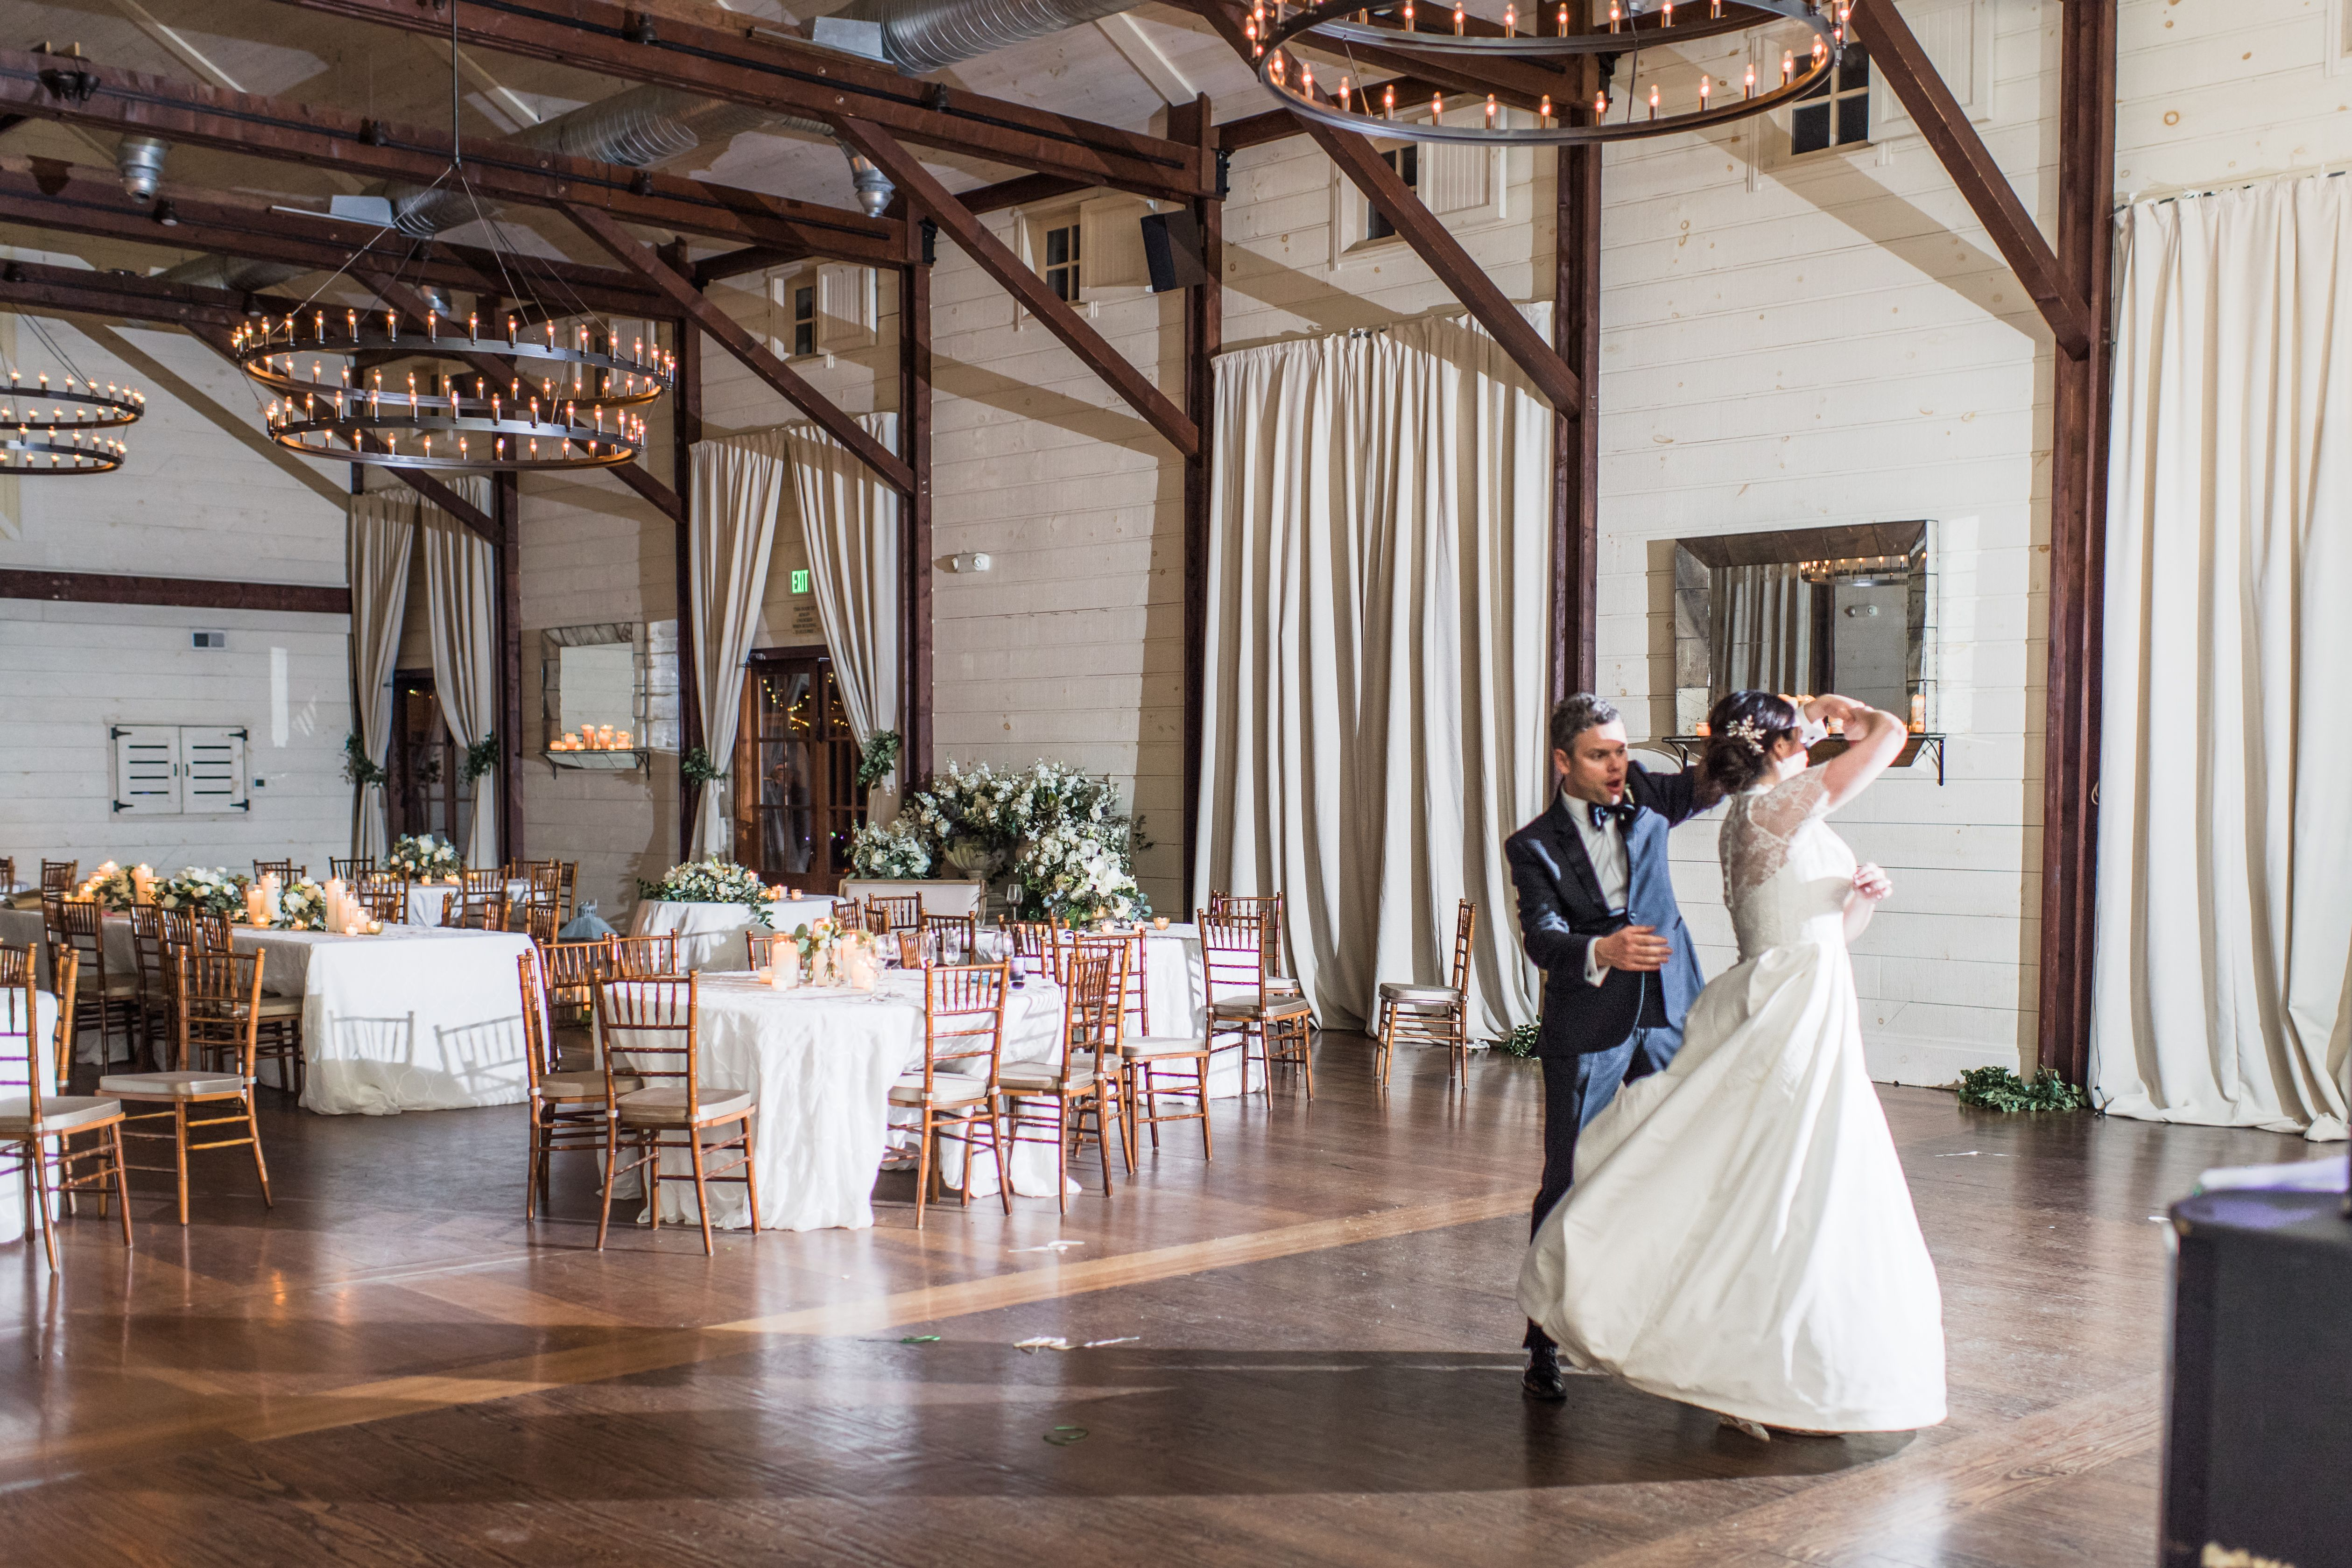 A Sweet Private Dance For The Bride Groom In The Granary At